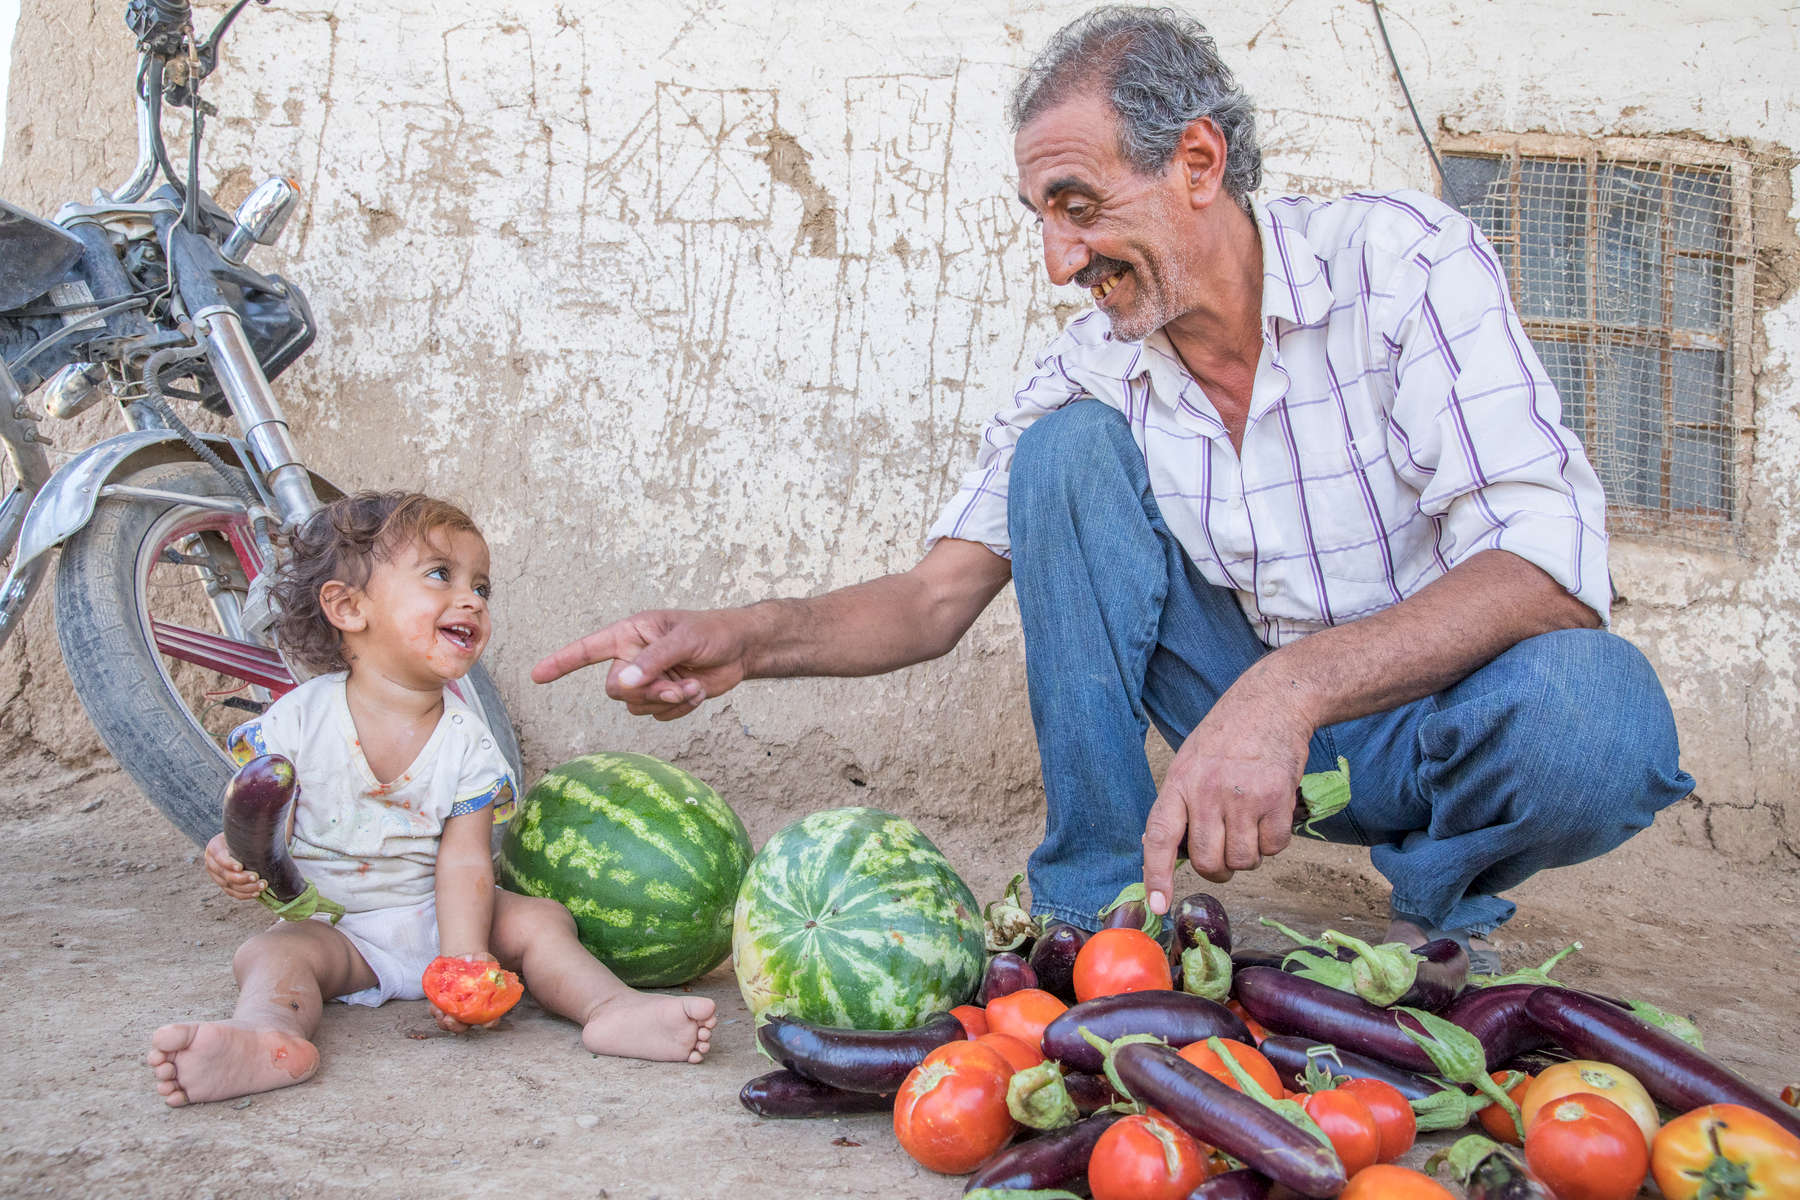 Abu Goubran with his granddaughter Wia, 1, and a pile of freshly harvested eggplant, tomatoes and watermelon. He does not own land, but has significant agricultural expertise thanks to a lifetime spent working in farming. Mercy Corps connected him to a landowner who was interested in benefiting from that expertise, and provided some resources to improve the farm, including building a greenhouse. Together, they have seen yields increase dramatically. The greenhouse generates 10 times the yield of the same area of land not under a greenhouse, Abu Goubran says. The use of greenhouses is not common in this area, so they were the first to be able to grow out of season vegetables. They use organic methods, with an apiary on site to pollinate the fields. They also open the farm to do training sessions for local farmers on innovative farming techniques.Between Abu Goubran, the landowner, the various laborers who work the fields and another partner who helps with purchasing supplies the farm directly supports four families. The village is home to another 400 families who benefit indirectly from reduced prices and a broader range of foods.